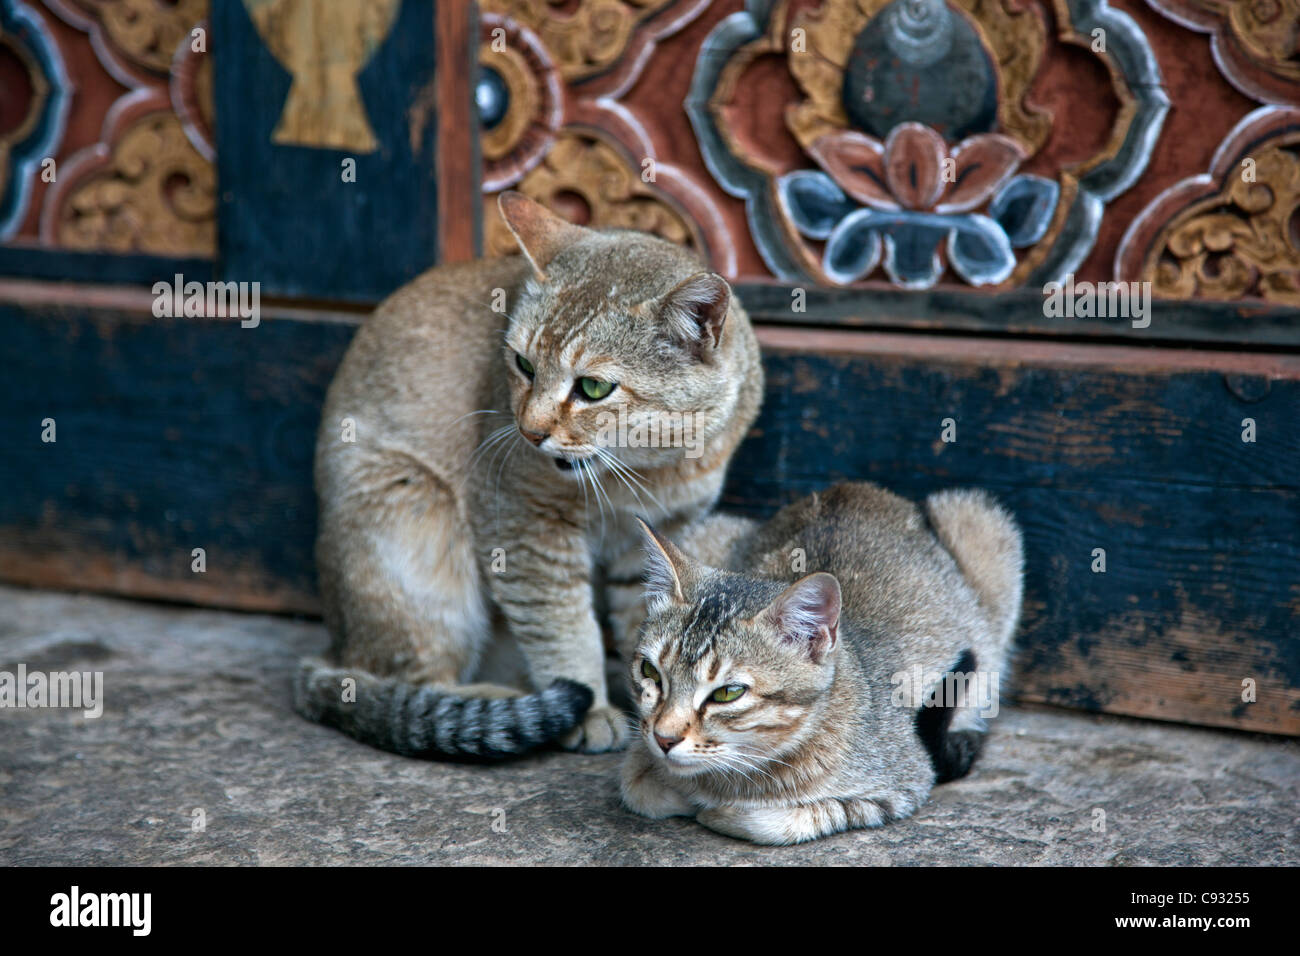 Monastery cats at Trongsa Dzong, a fortress that was built in the 1640s. - Stock Image